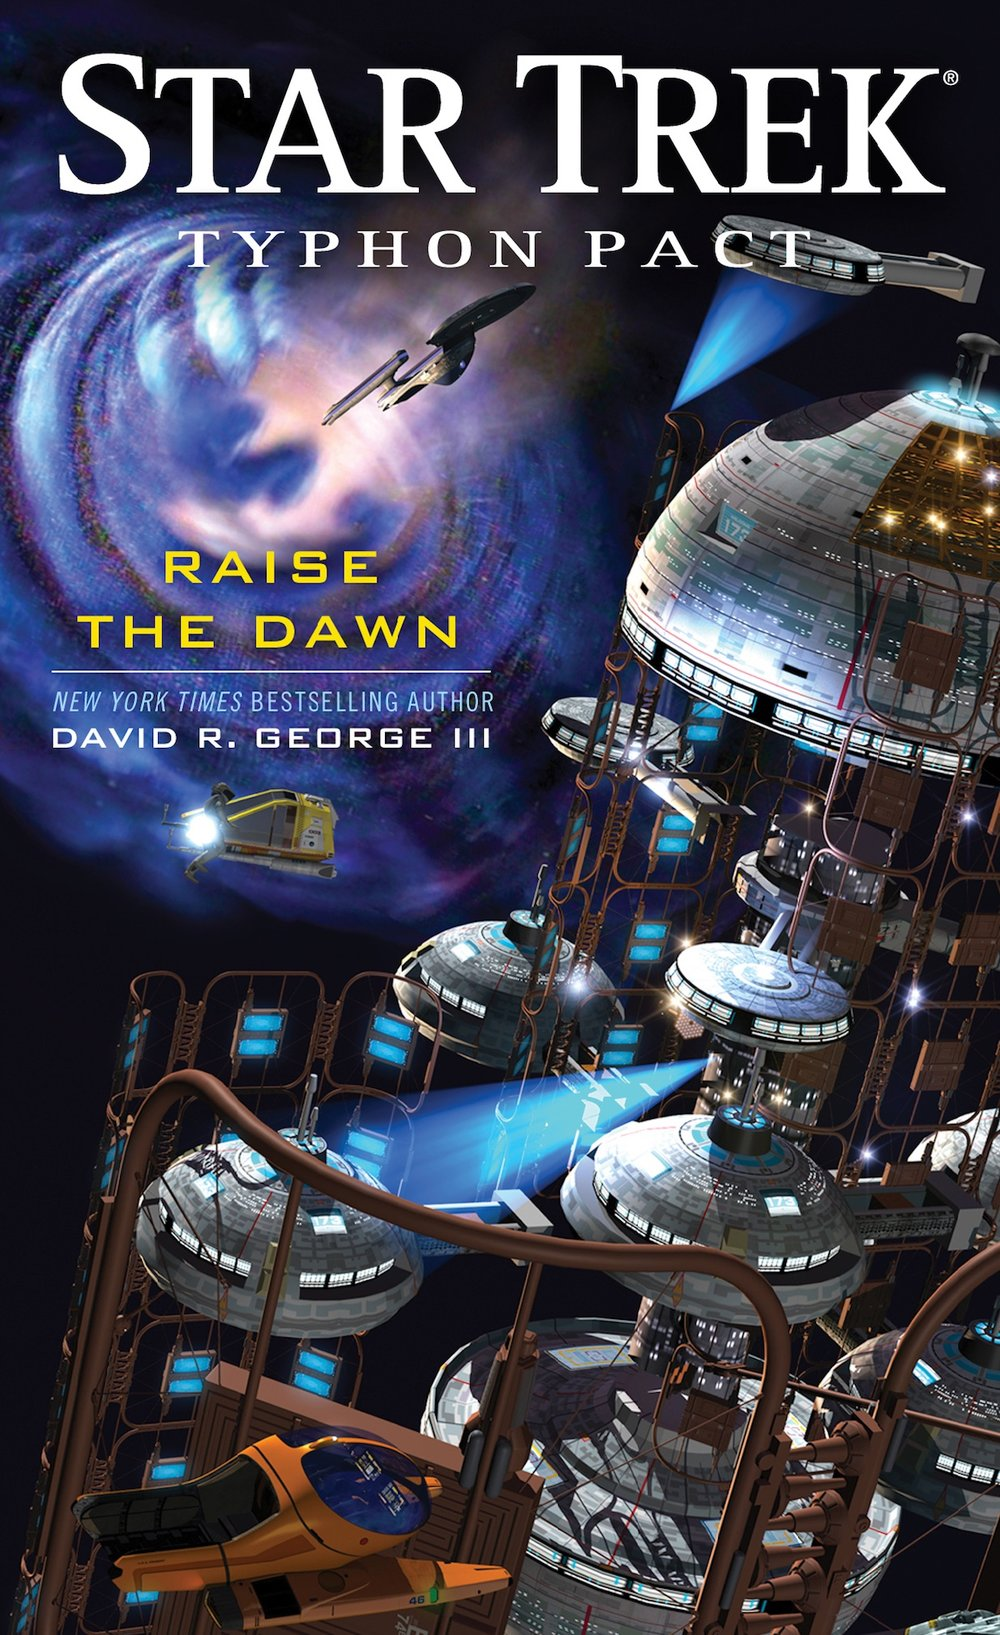 raise-the-dawn-front.jpg